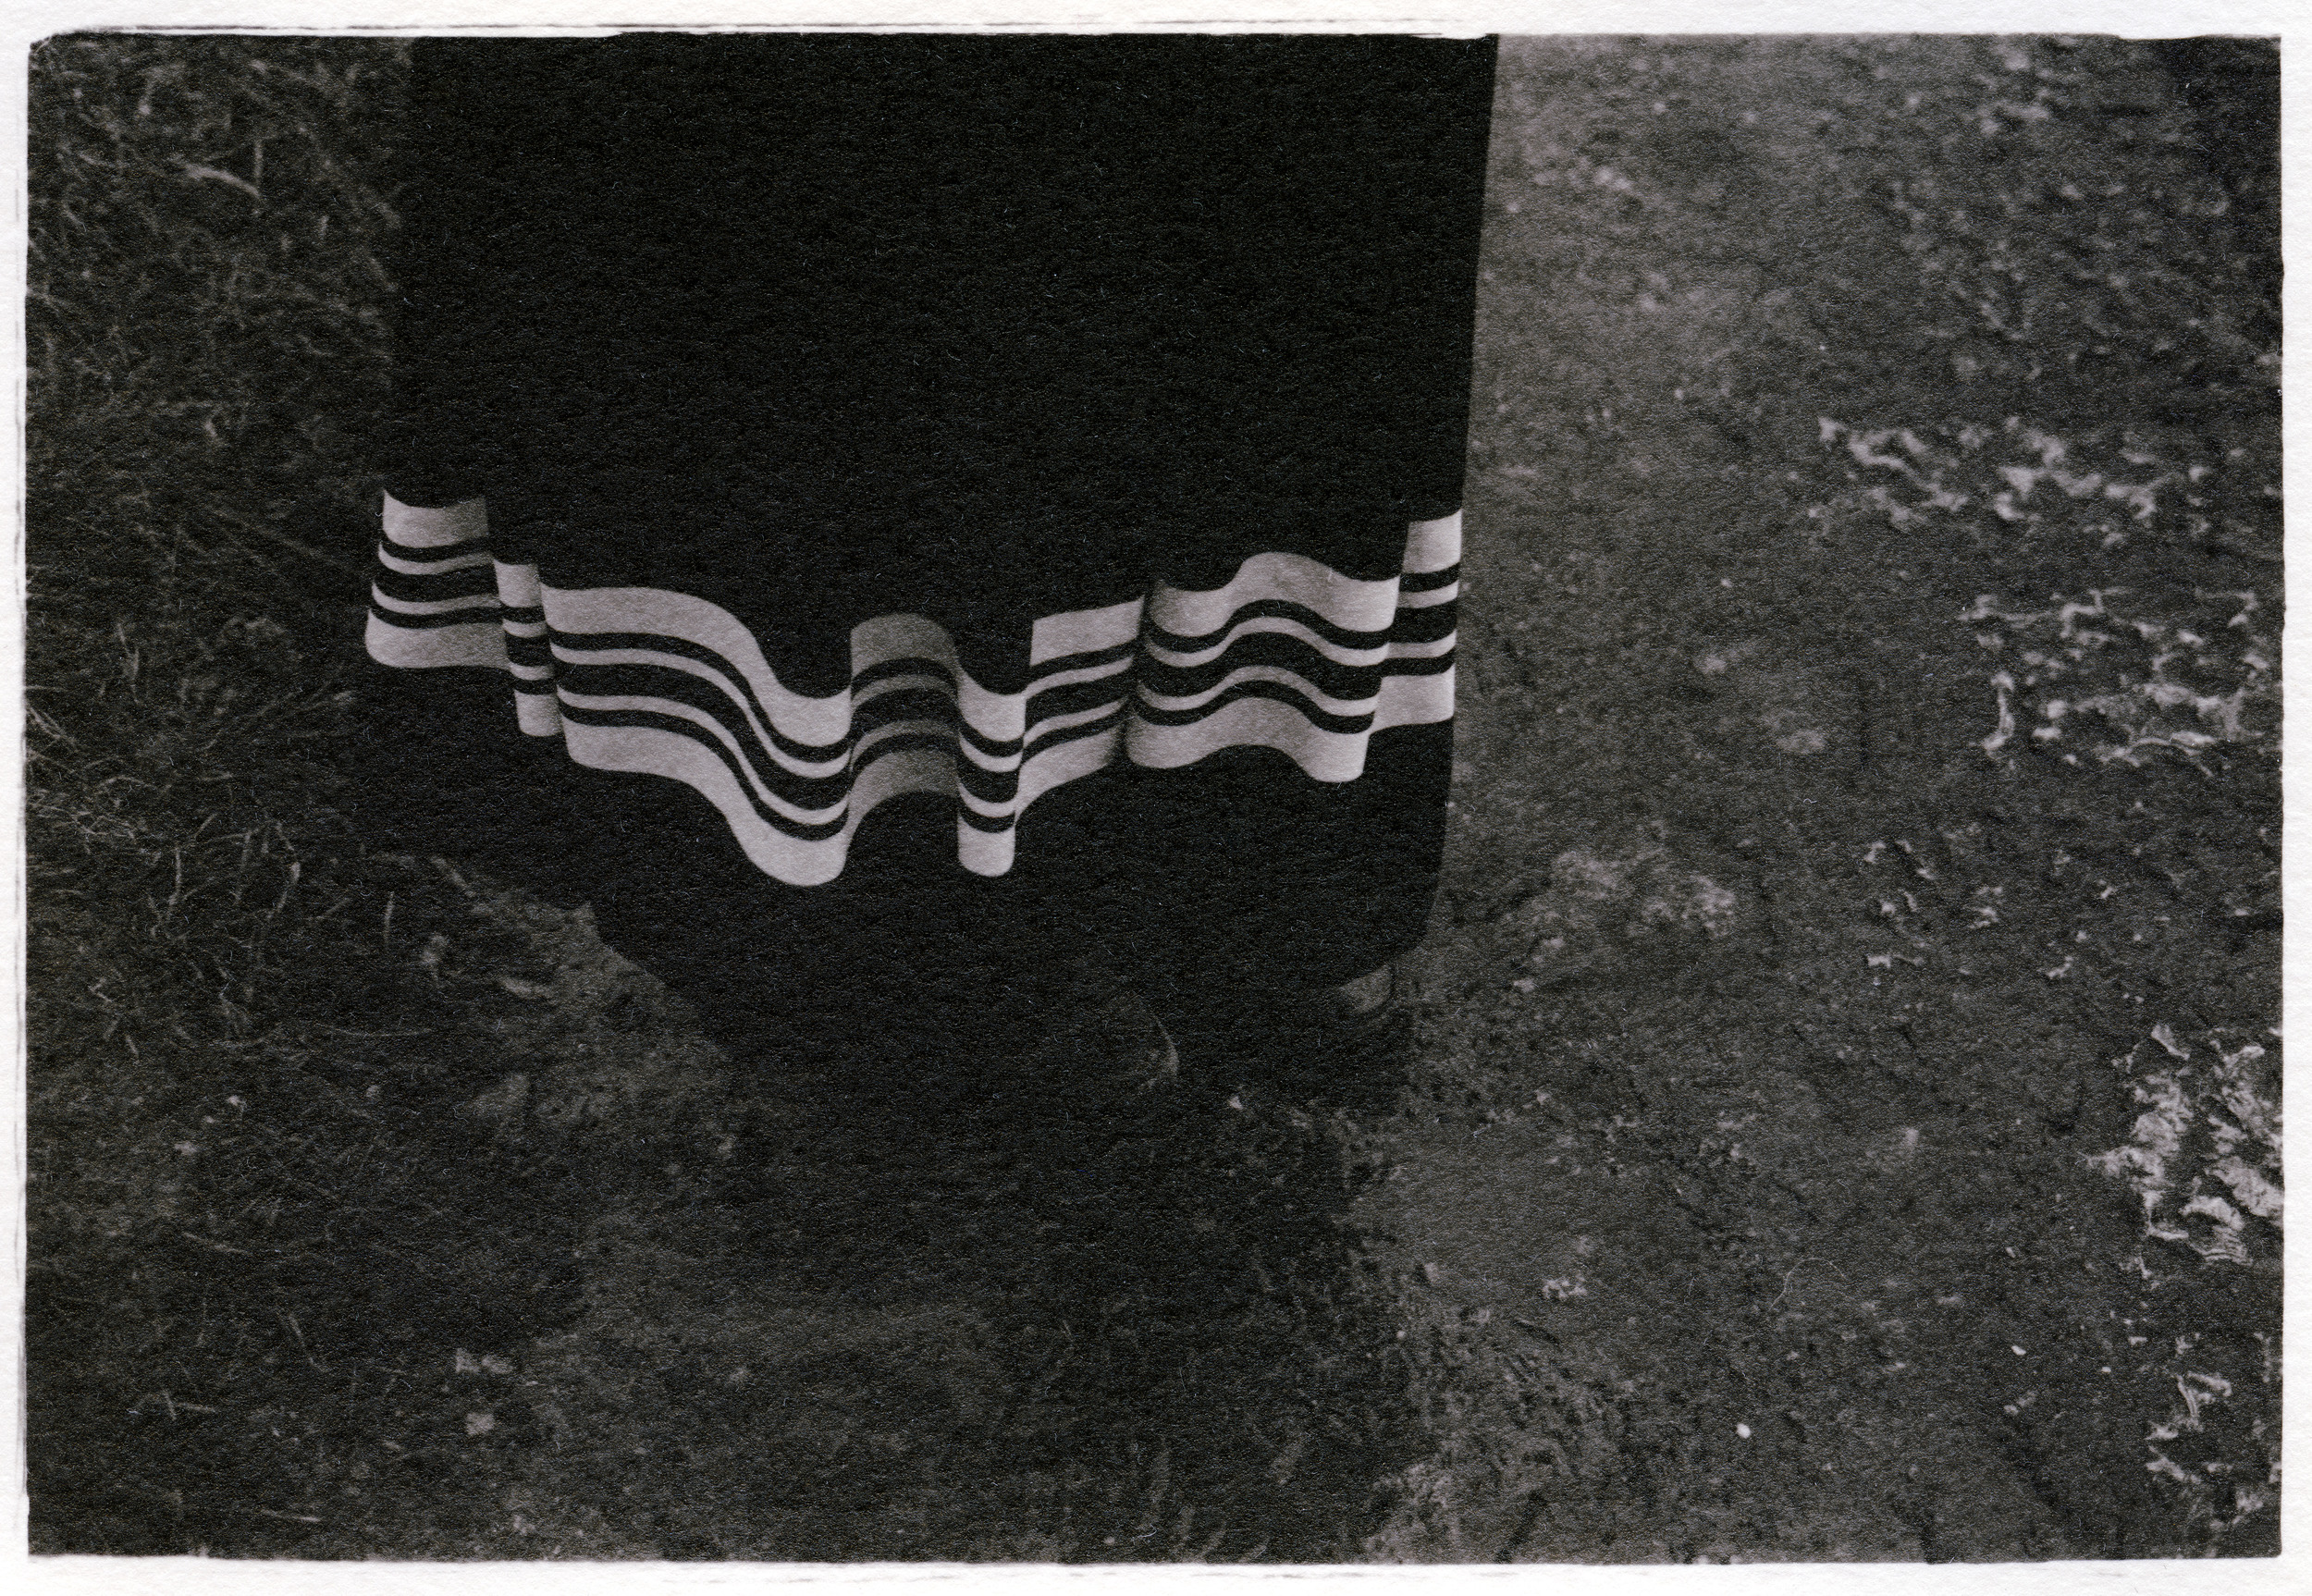 Skirt    Silver Gelatin Print, Switzerland, 2014